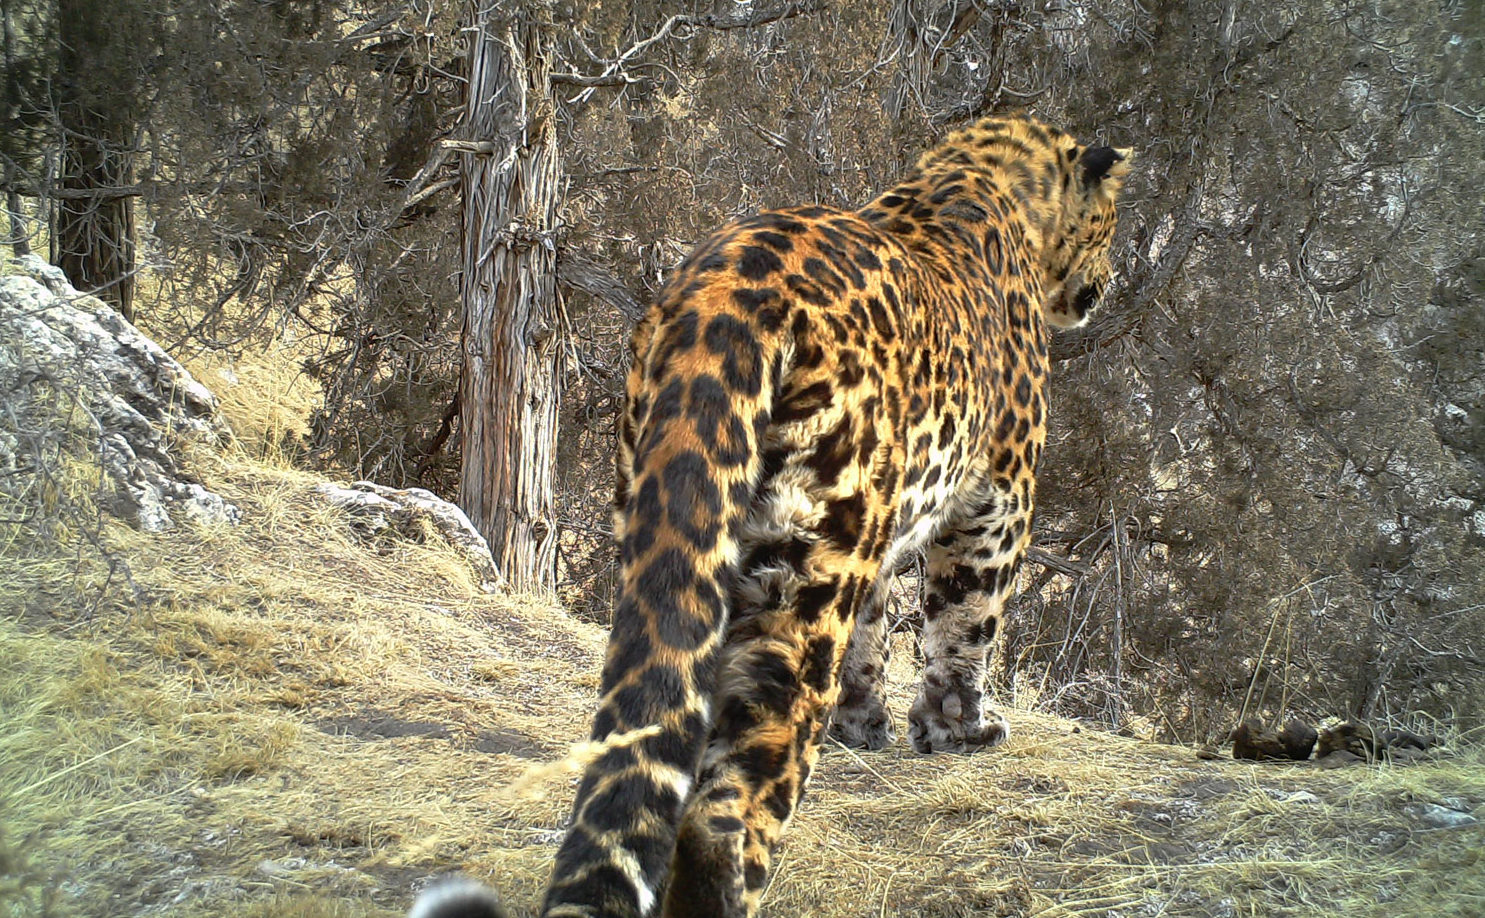 Leopard Snow Leopard Sharing Habitat - Conjour Editorial - Feature Image